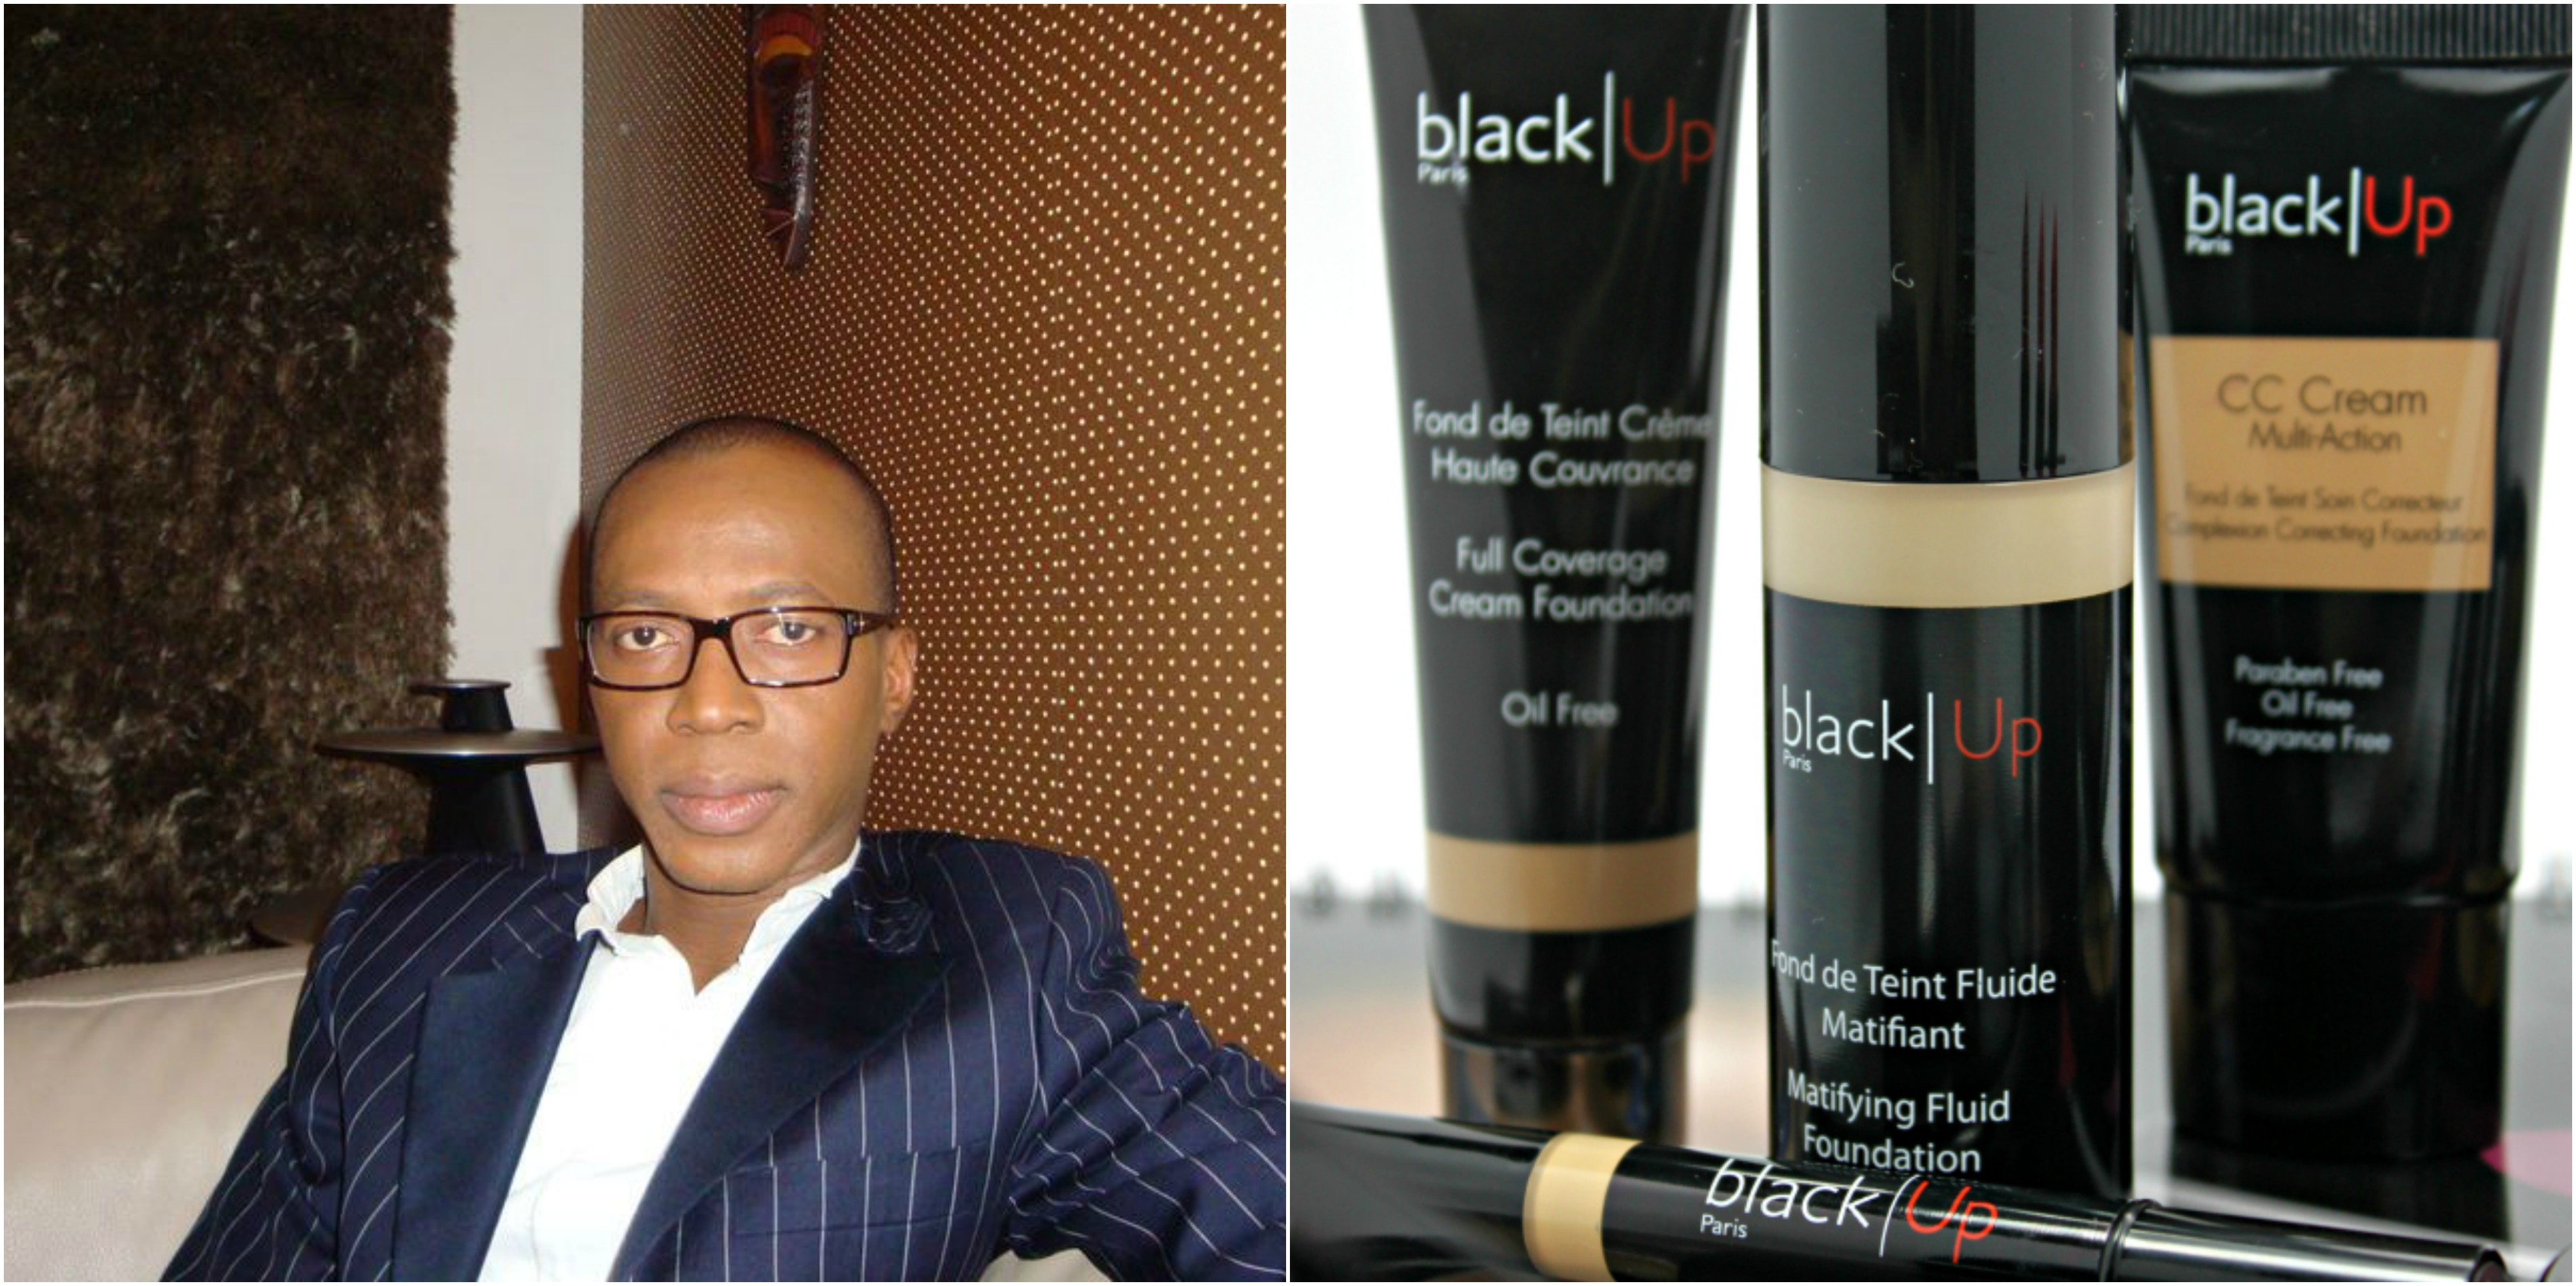 Where to buy black up cosmetics